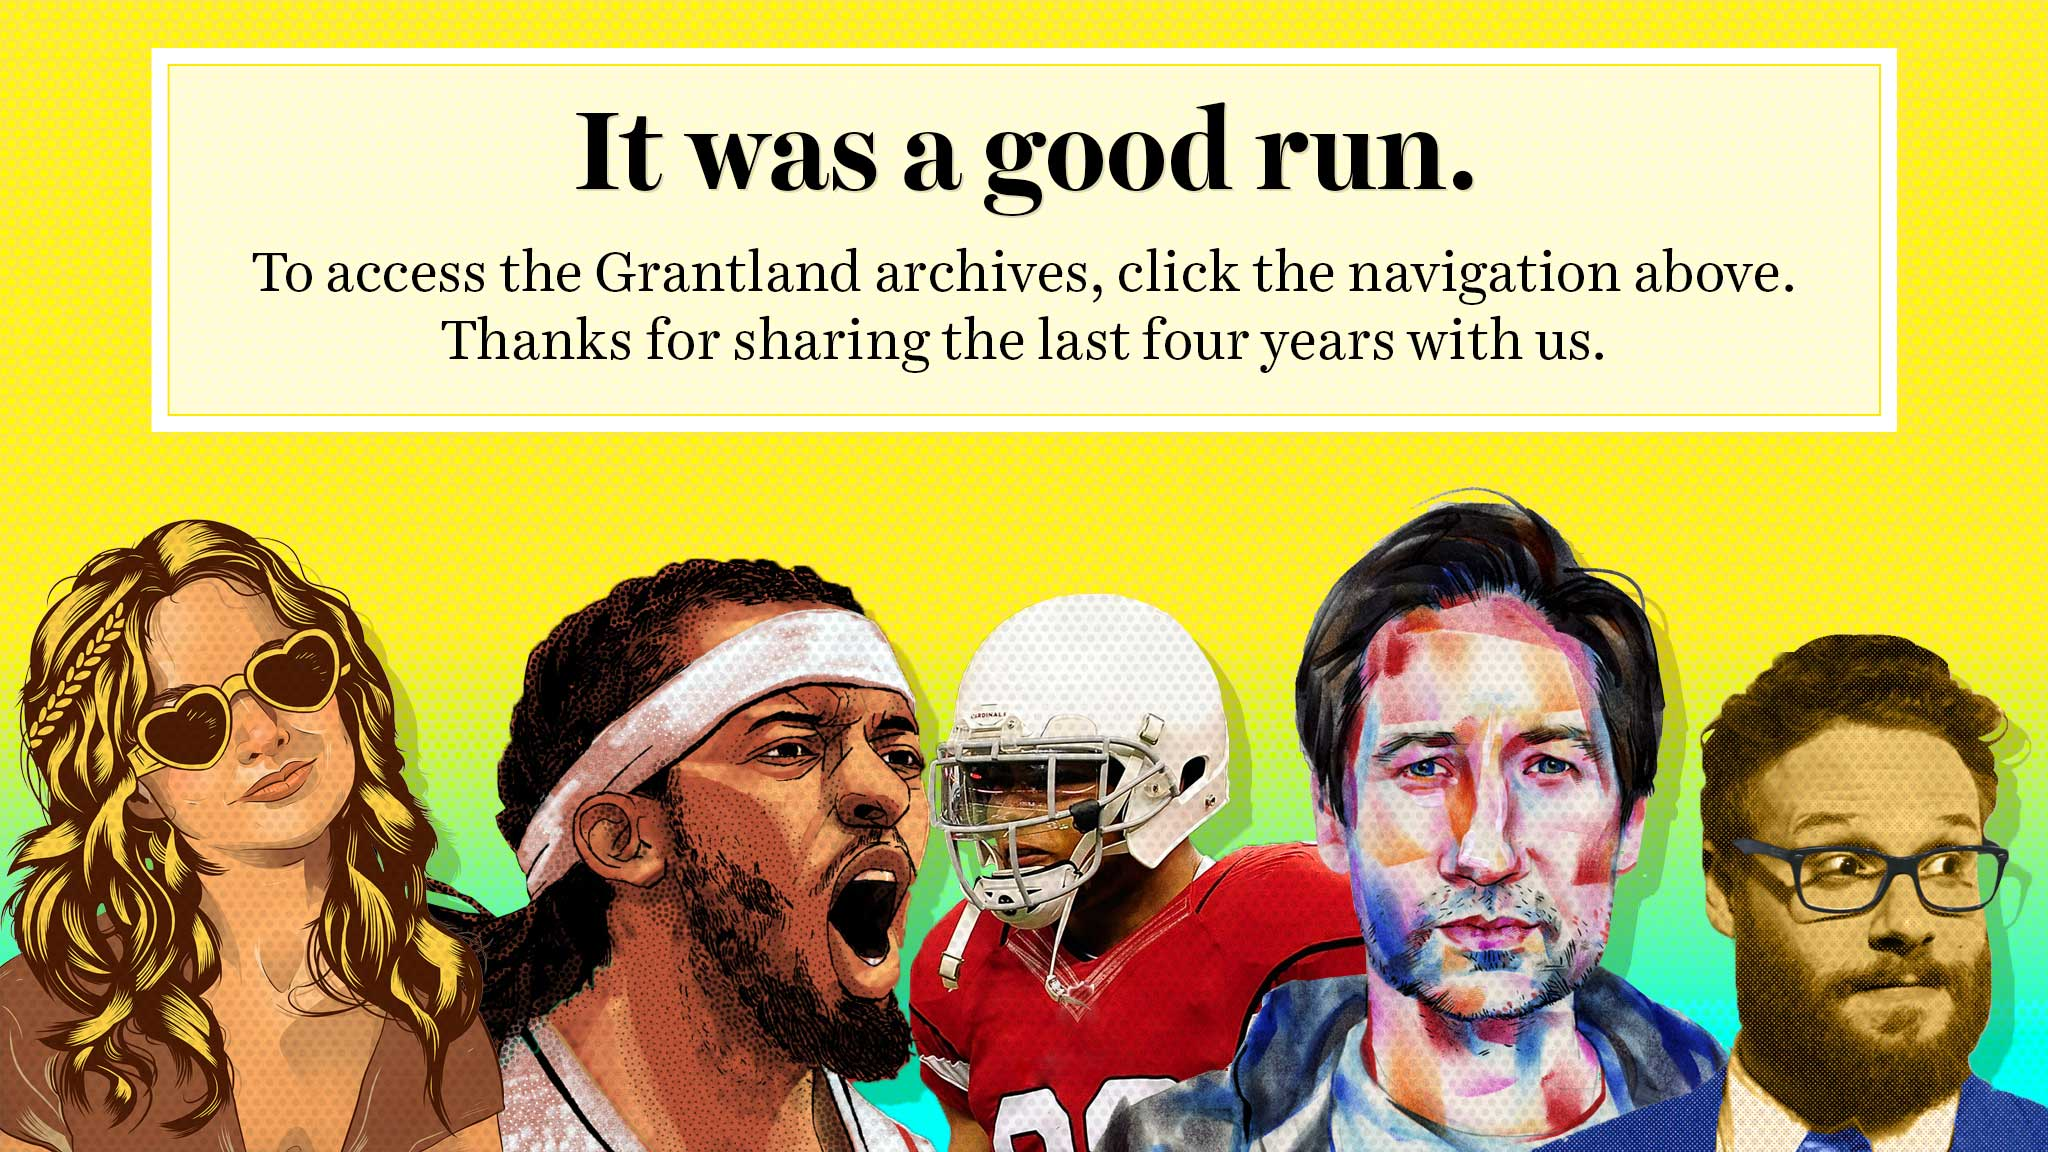 Sports and Pop Culture from our rotating cast of writers – Grantland